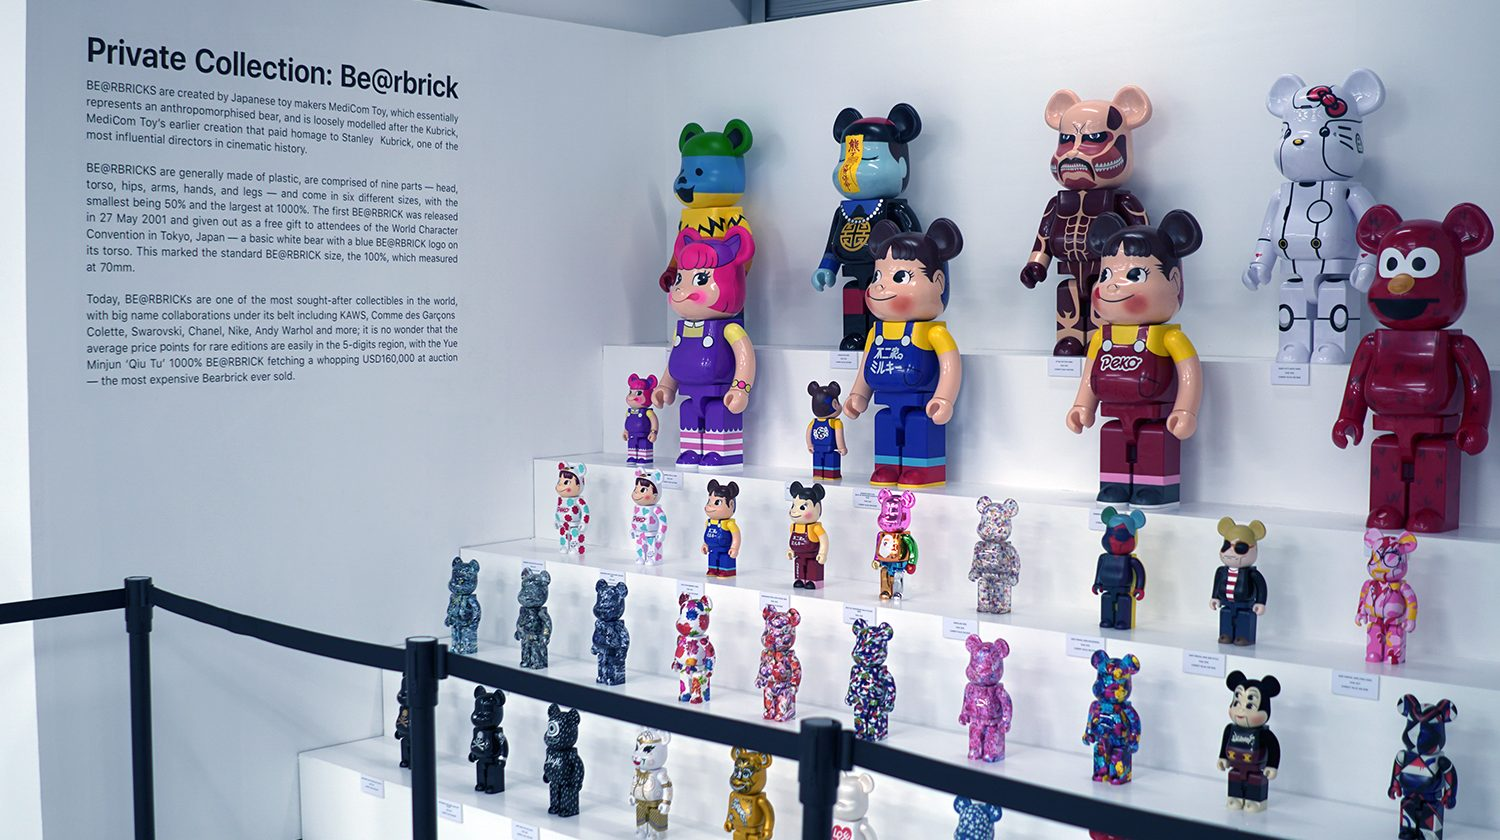 Culture Cartel Toys Bearbrick 1 by Neighbourlist